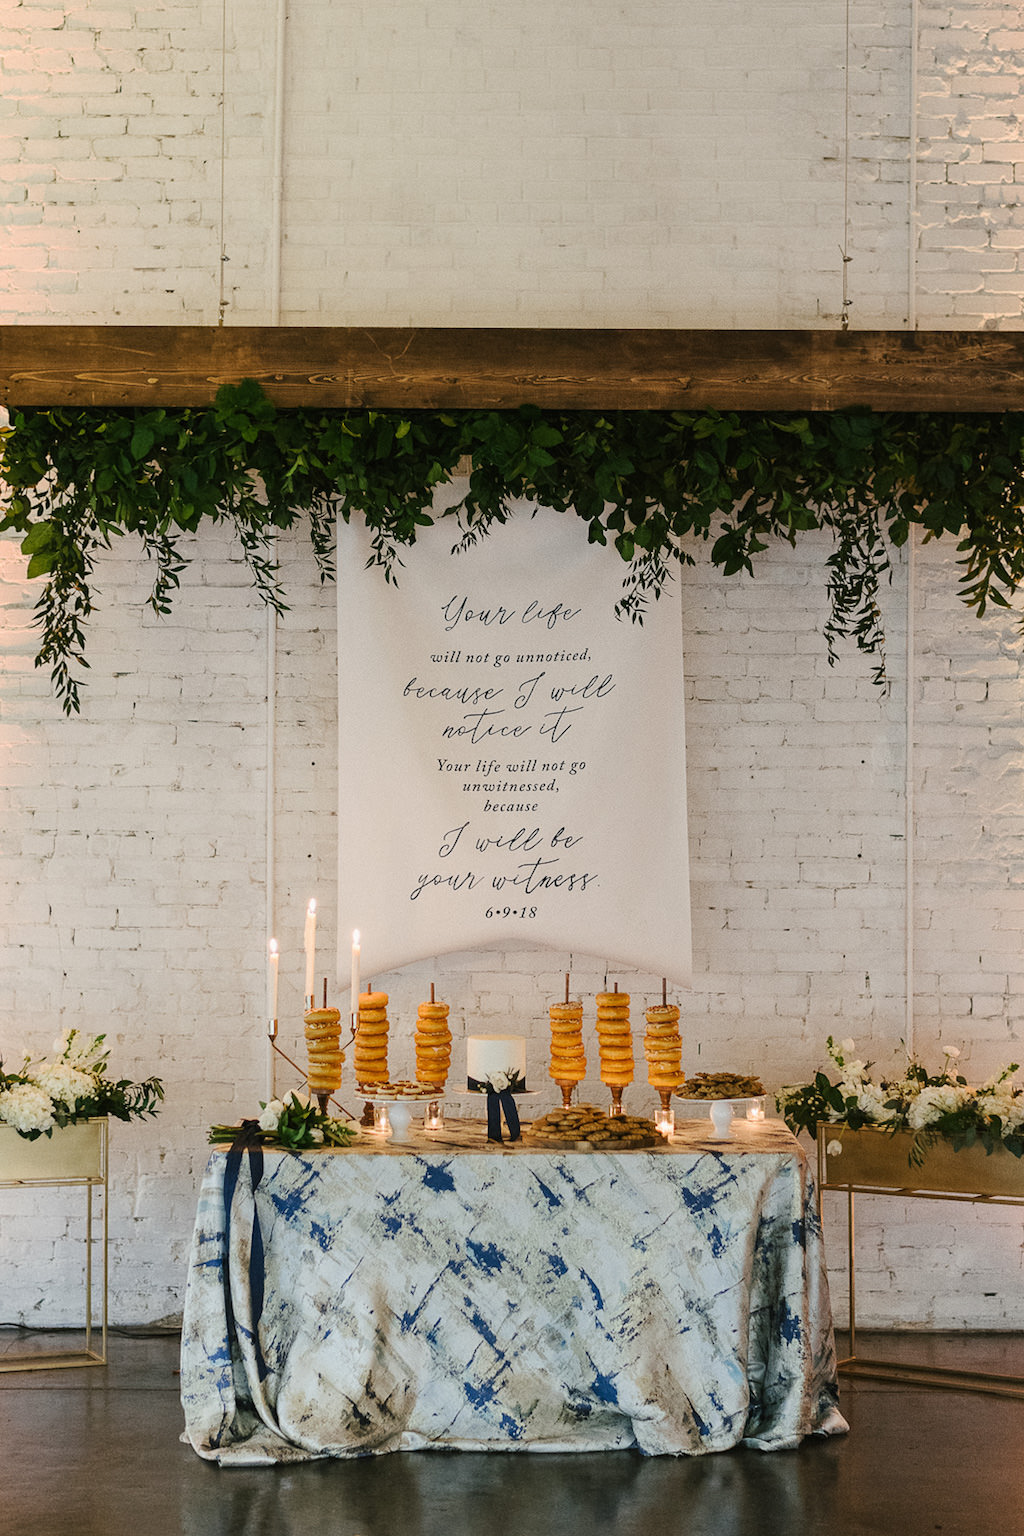 Rustic Wedding Reception Dessert Table with Cookies and Mini Doughnuts, Candlesticks, One Tier White Wedding Cake on Artsy Blue and White Linen, Upside Down Wooden Planterbox and Green Leaves and White Fabric Wedding Banner | Lakeland Wedding Venue Haus 820 | Tampa Bay Wedding Rentals Over the Top Linens